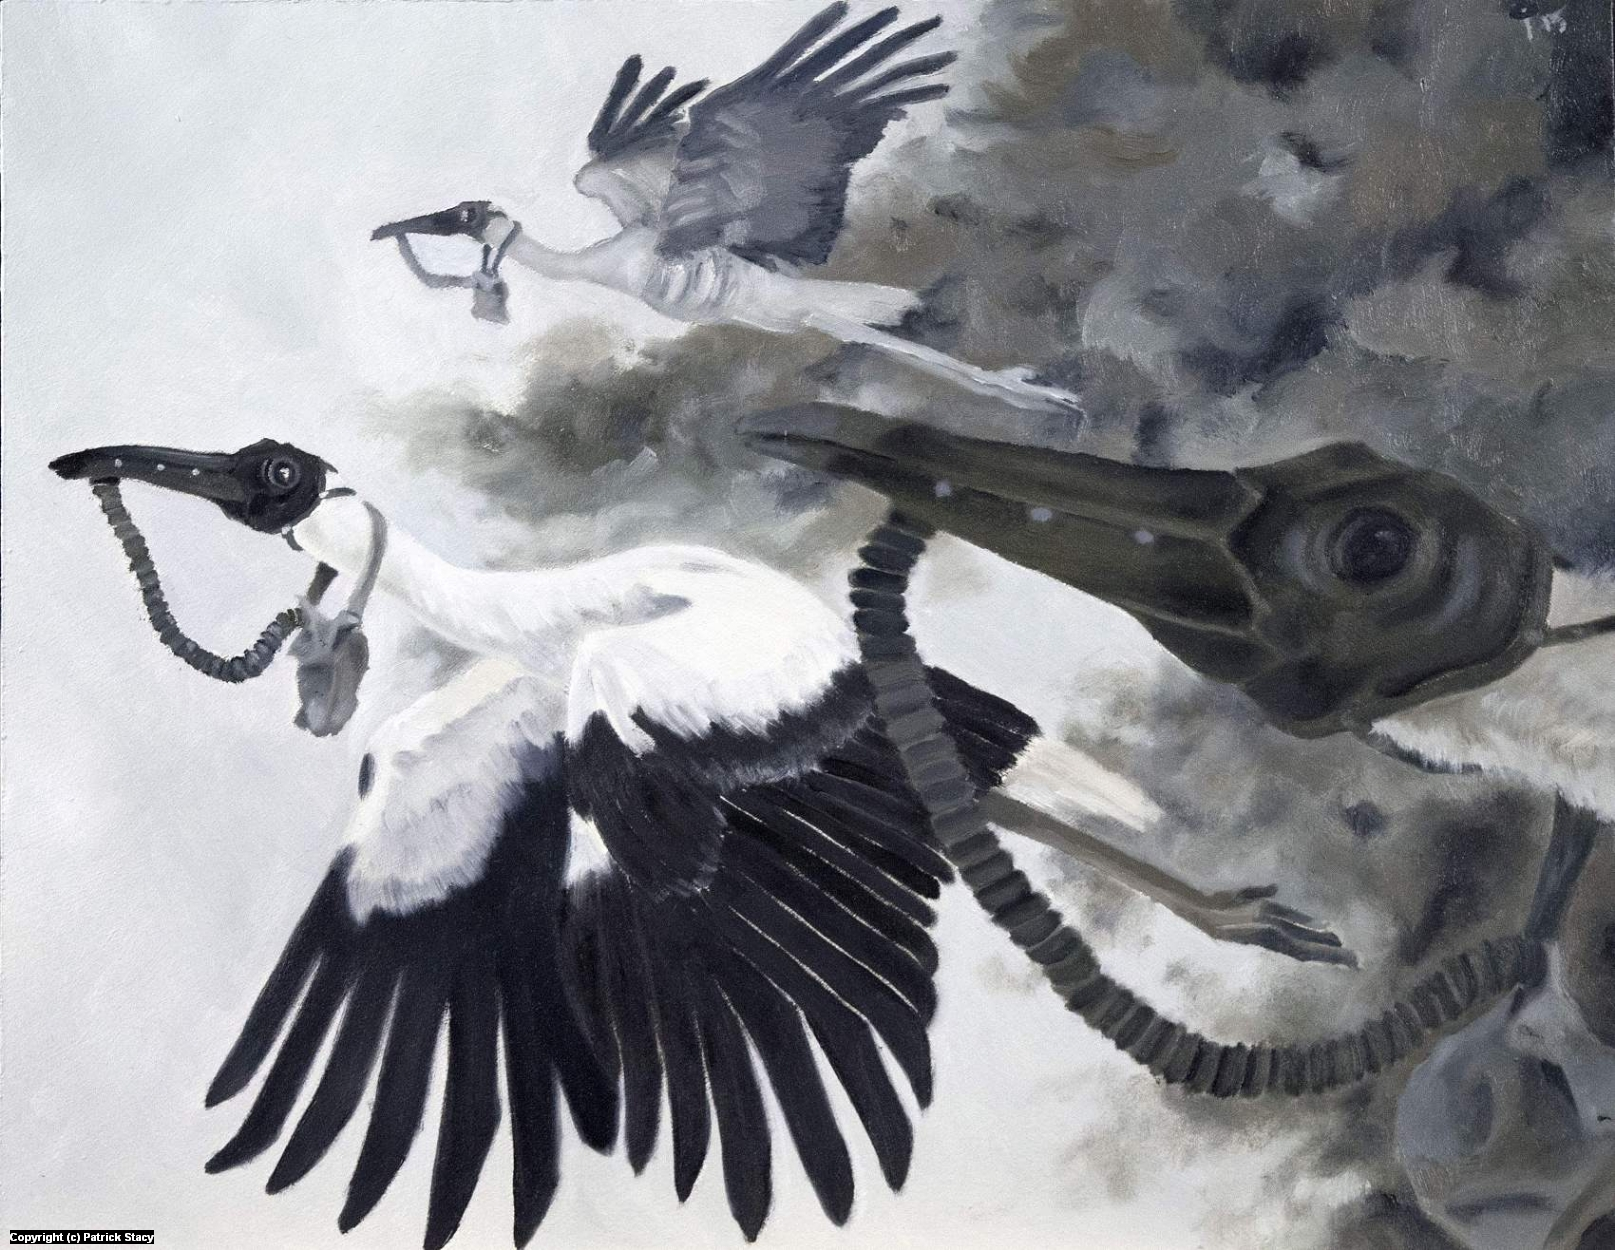 Flying Blind Artwork by Patrick Stacy